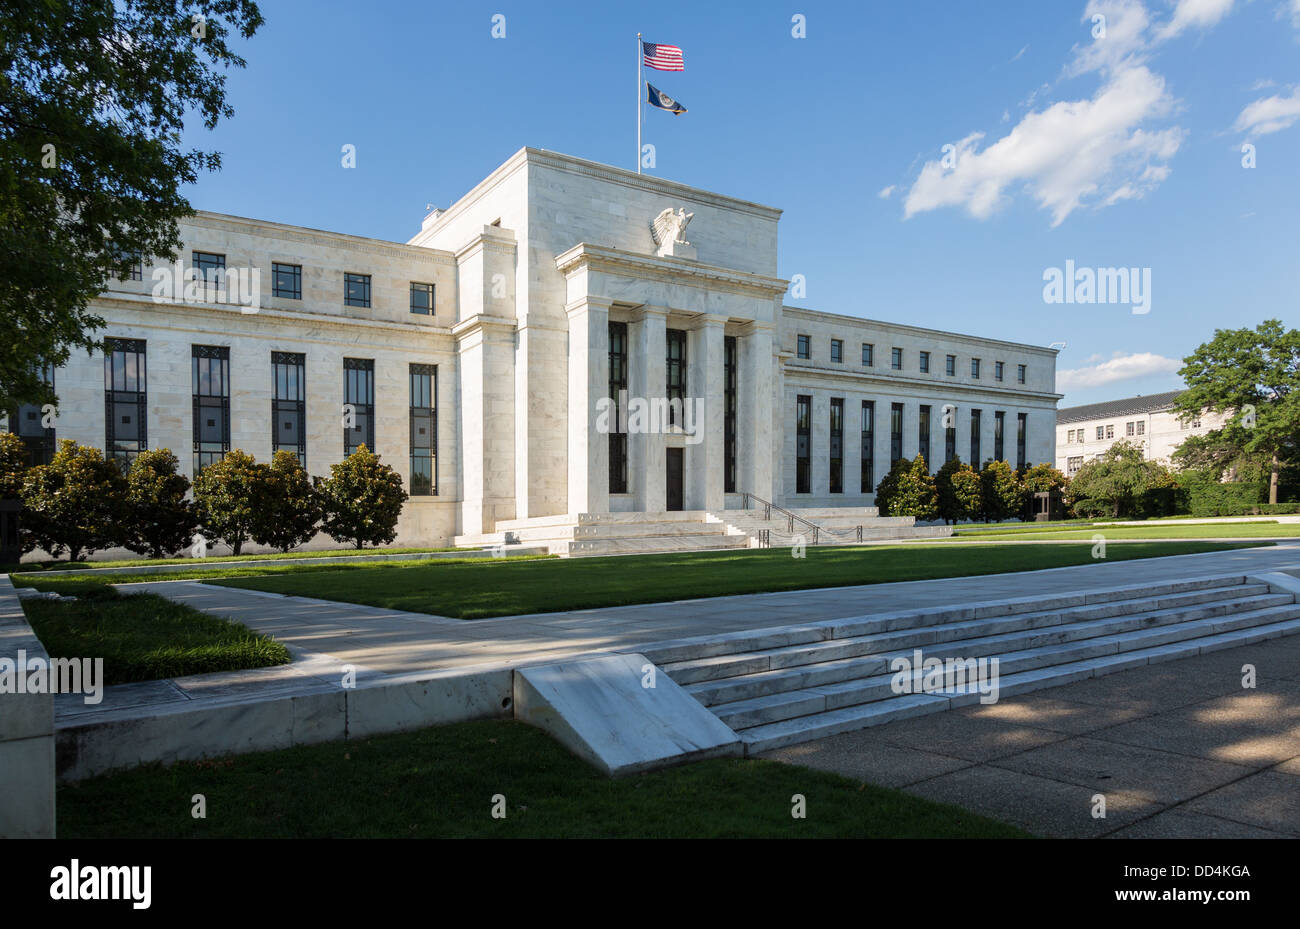 US Federal Reserve Board Building (the Fed), Washington, D.C., USA - Stock Image